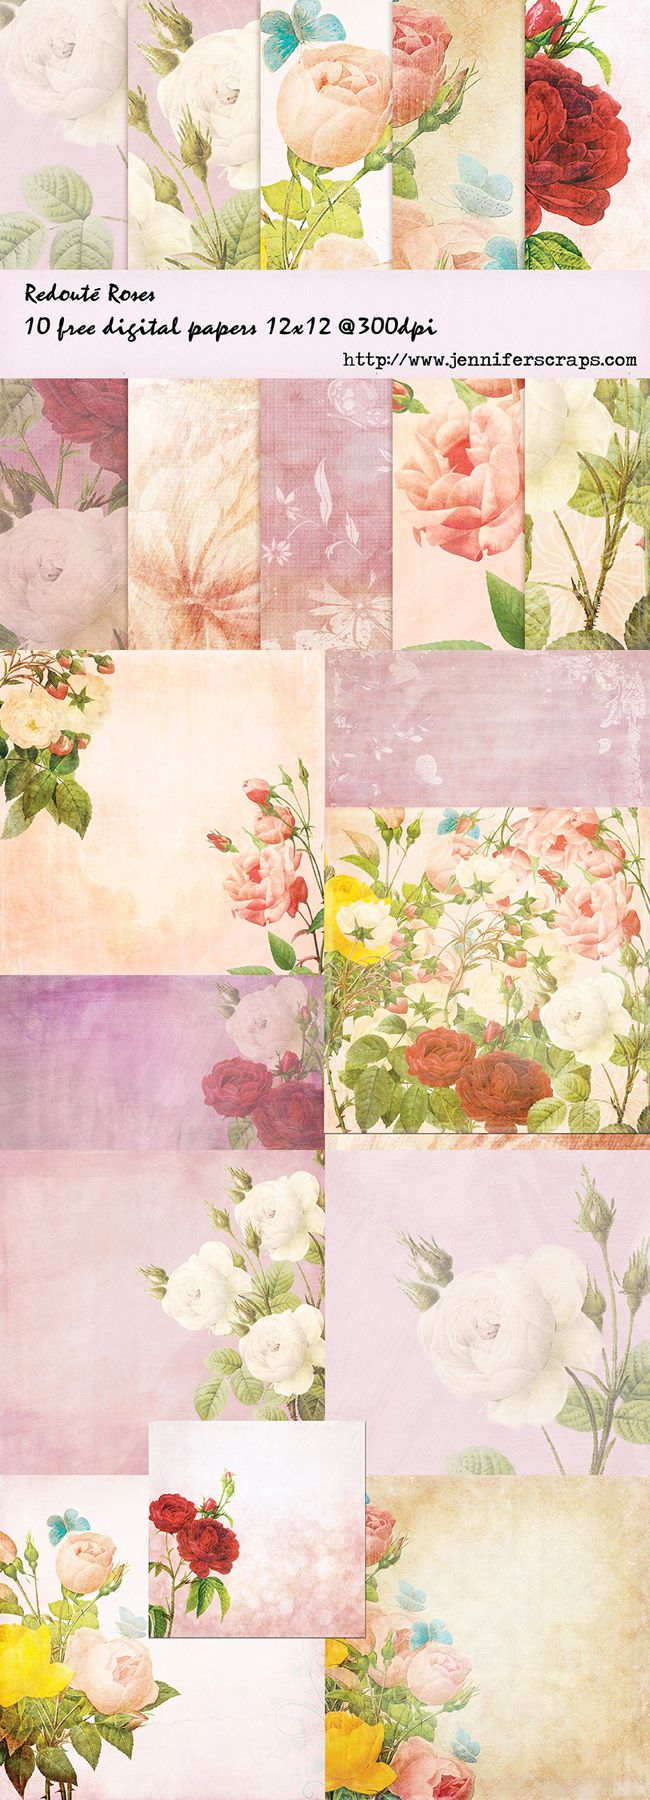 Free Redoute Rose Digital Scrapbooking Papers Part 1